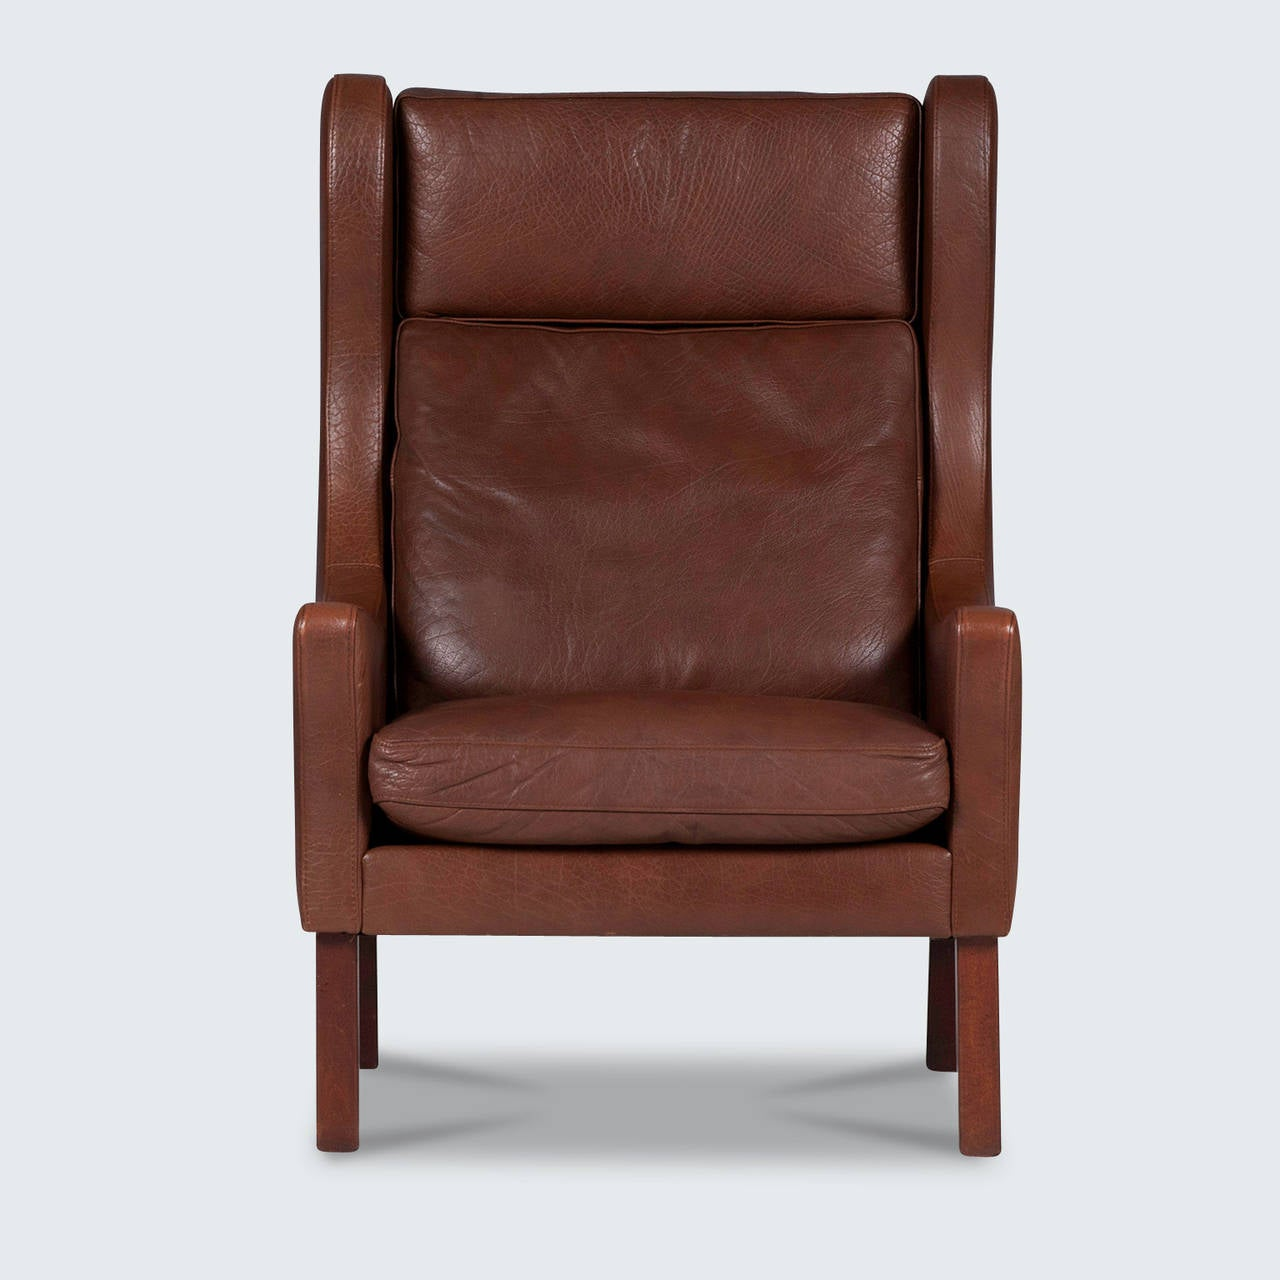 Leather Arm Chairs Vintage Danish Wingback Armchair In Dark Brown Leather